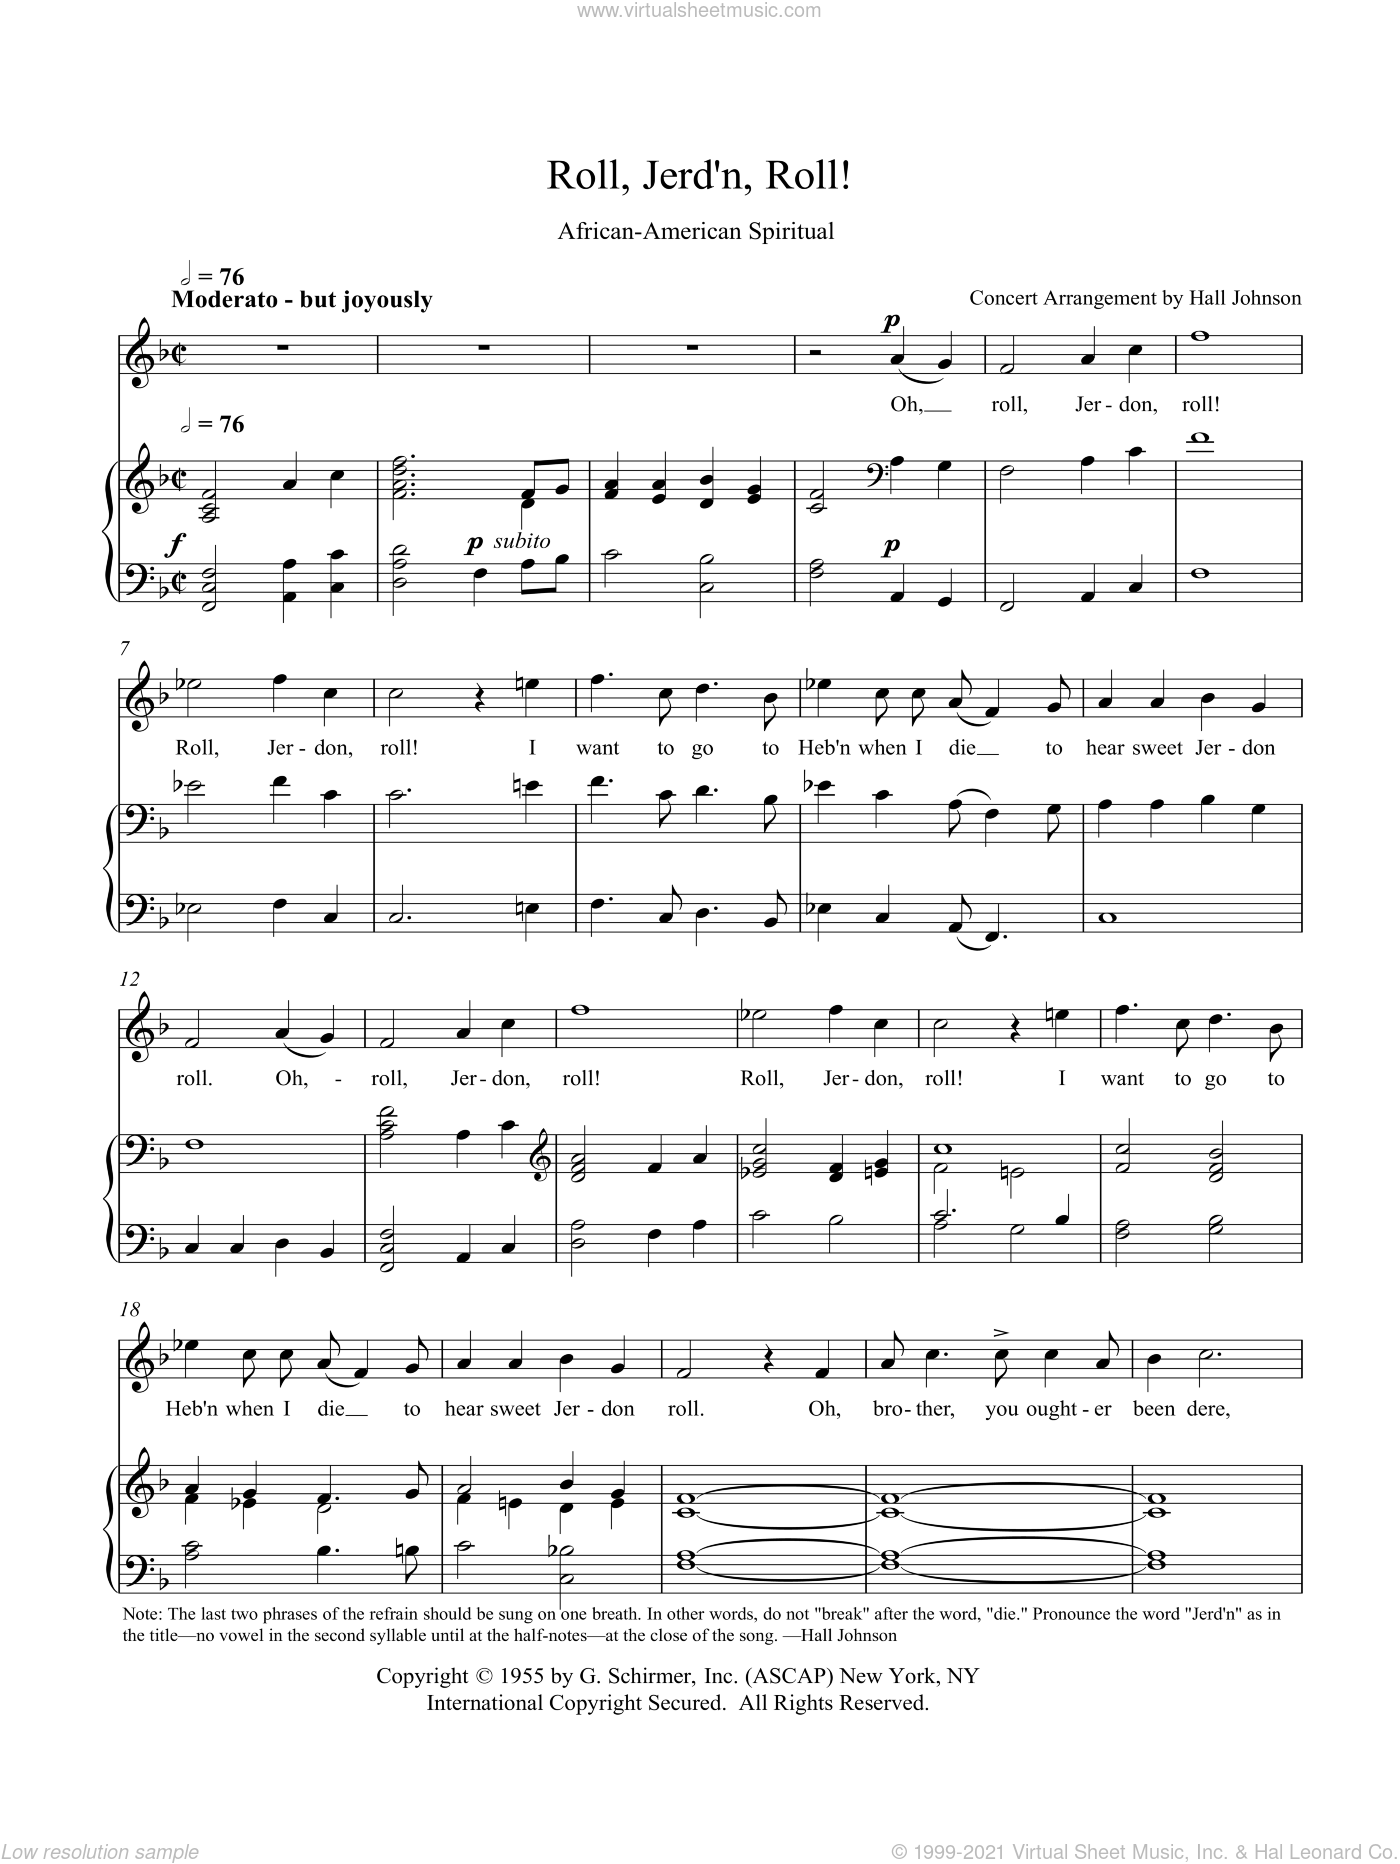 Roll, Jordan Roll (F) sheet music for voice and piano by Hall Johnson. Score Image Preview.